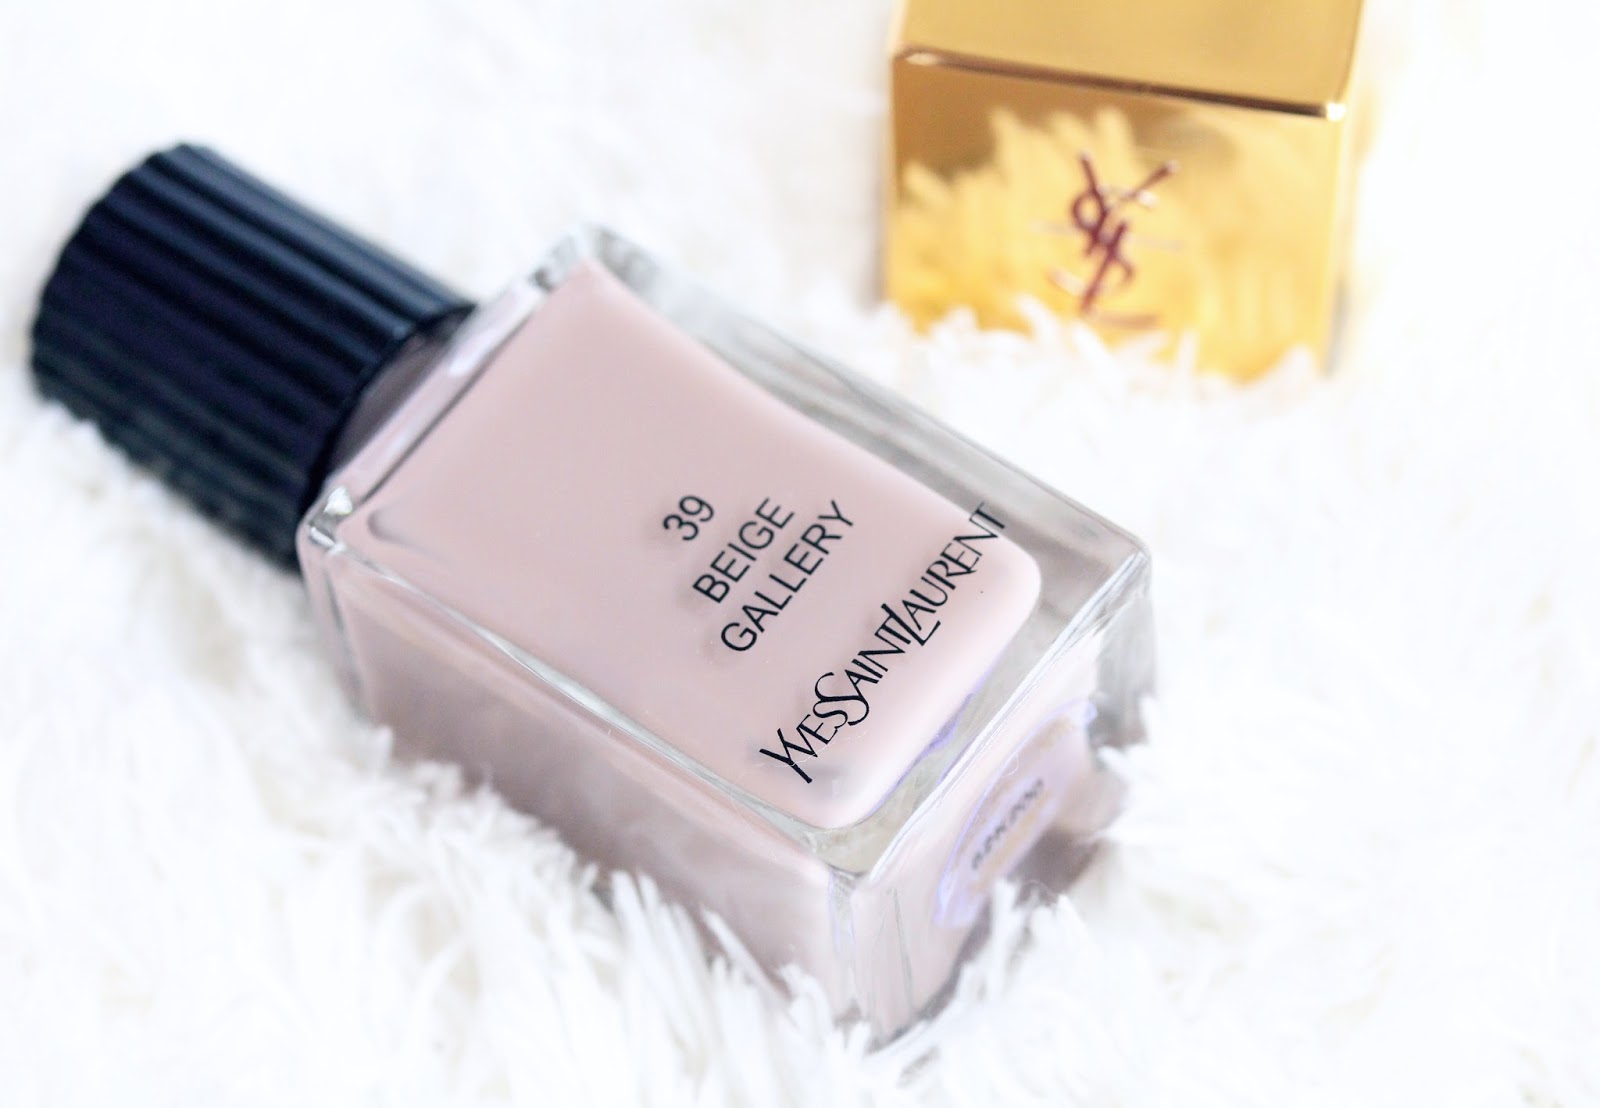 YSL La Laque Couture Nail Polish in Beige Gallery